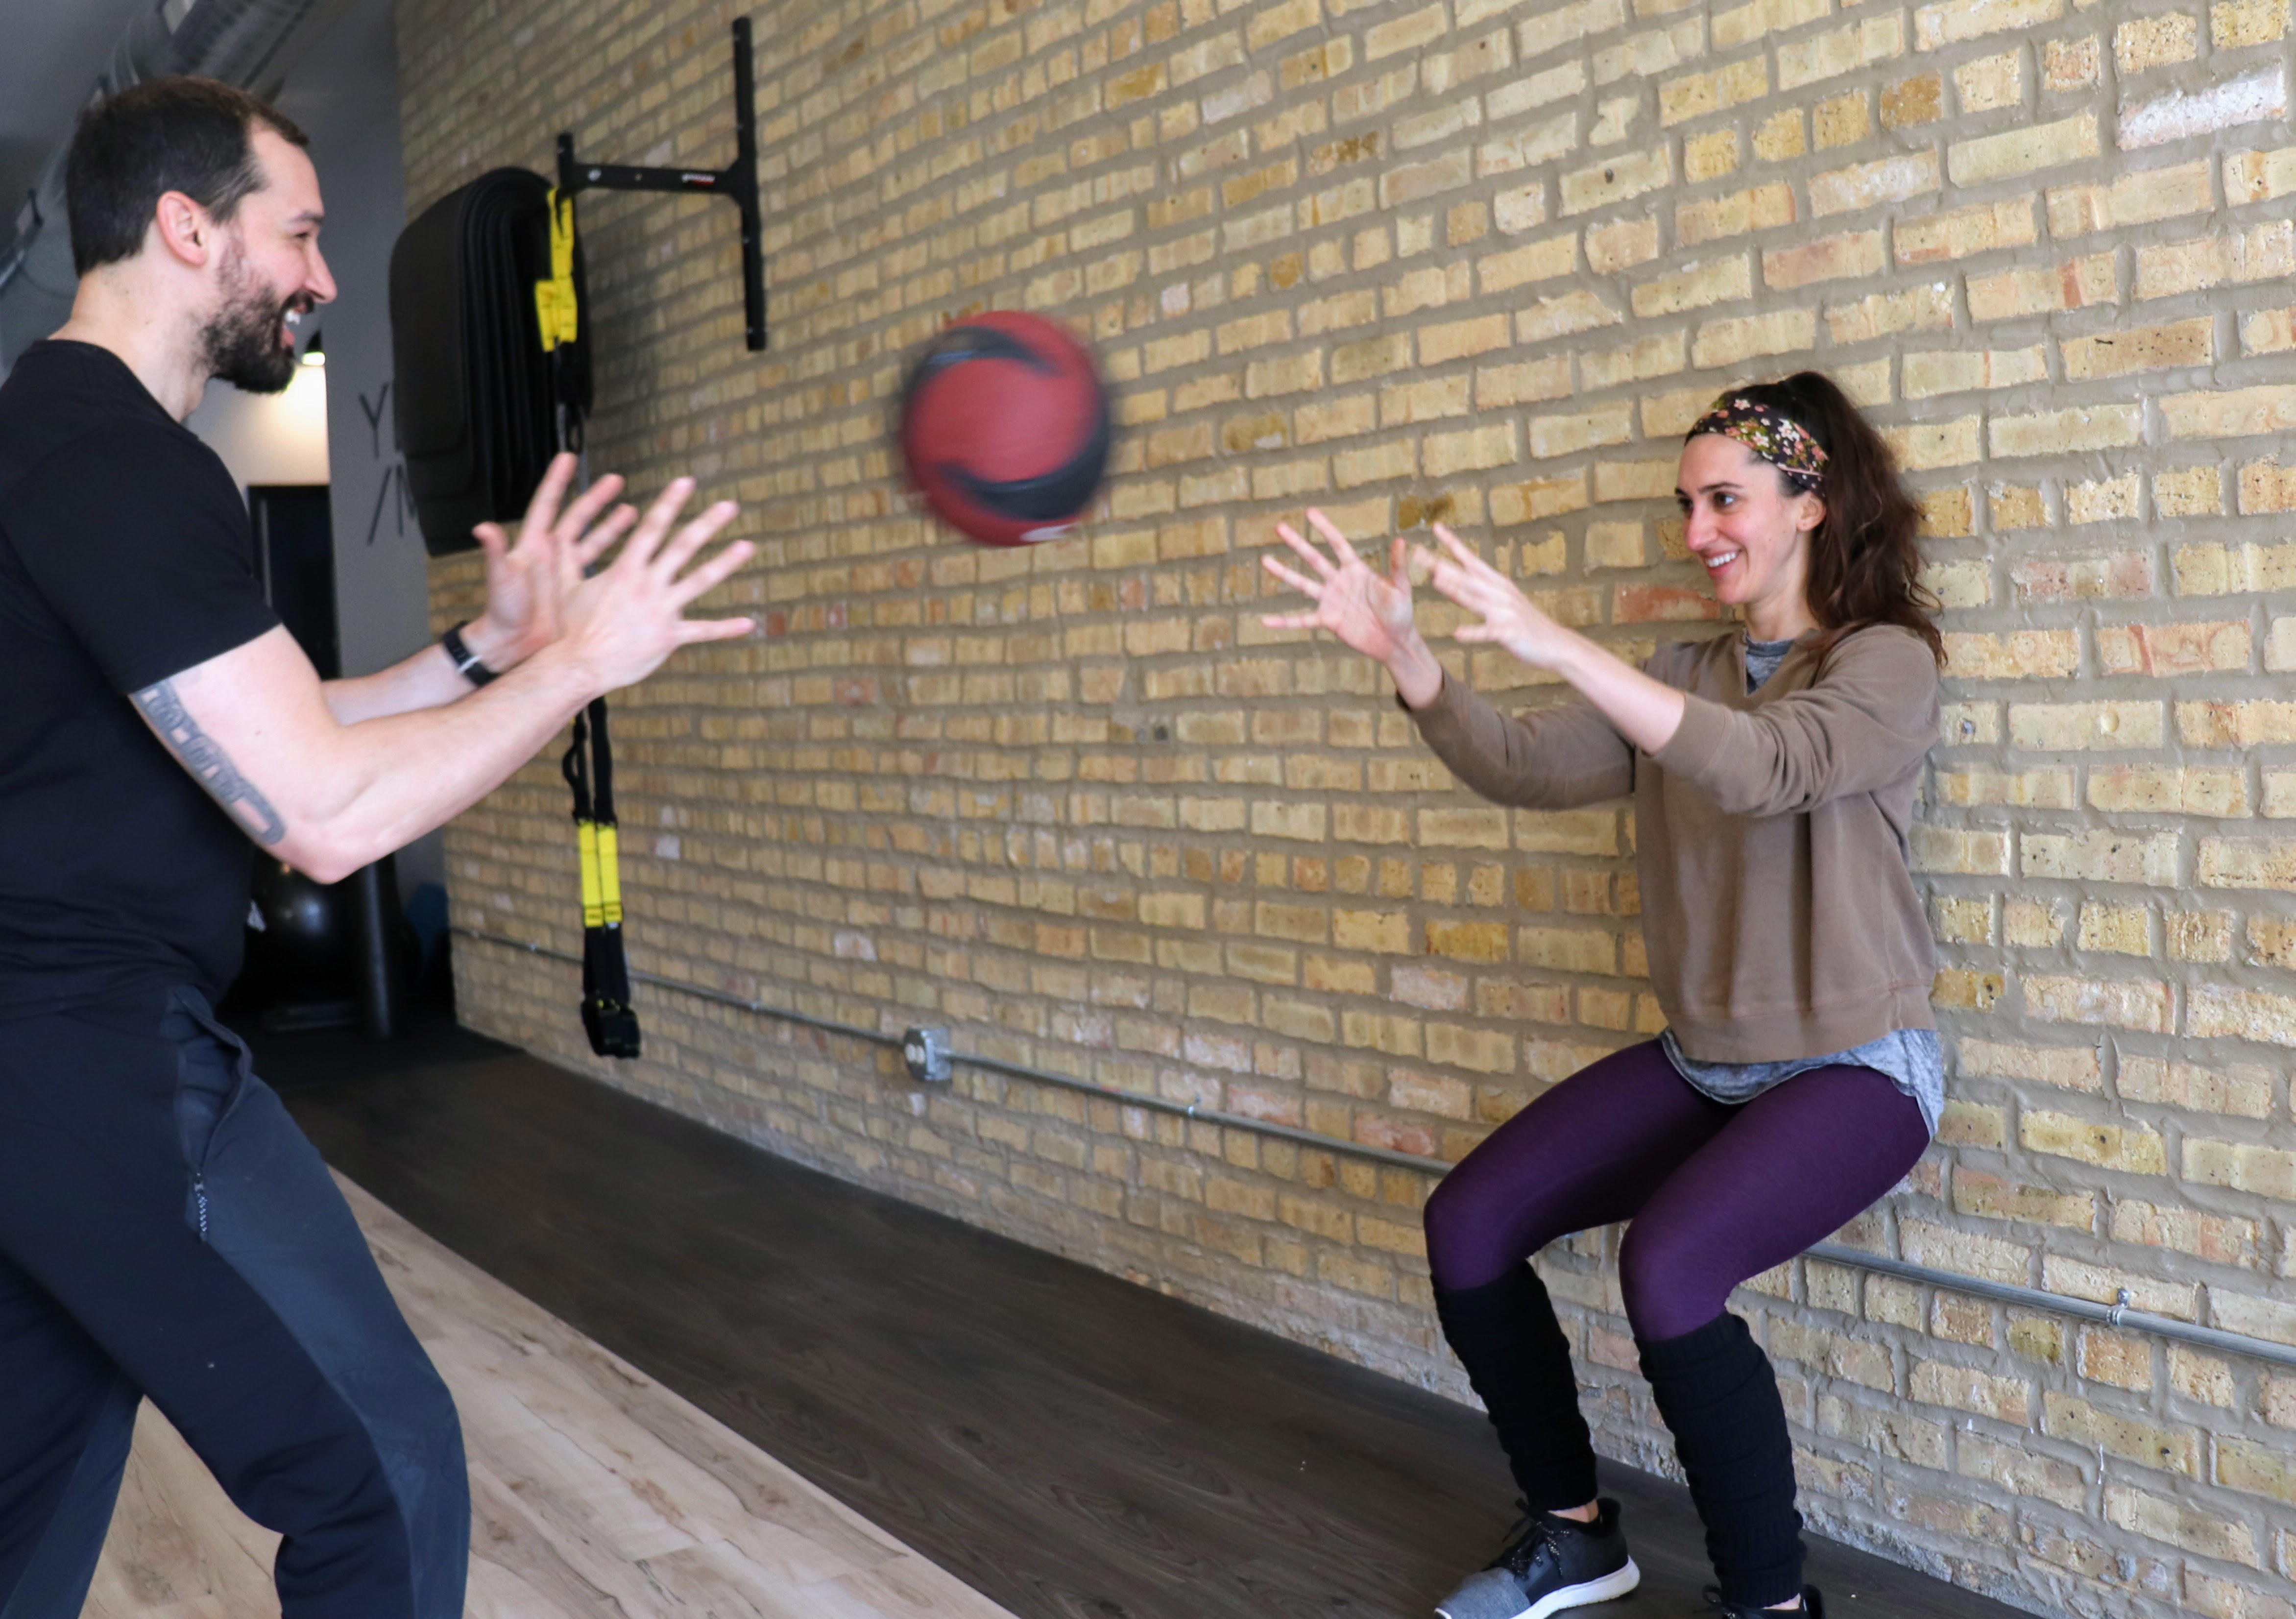 trainer and client pass ball back and forth while holding wall squat